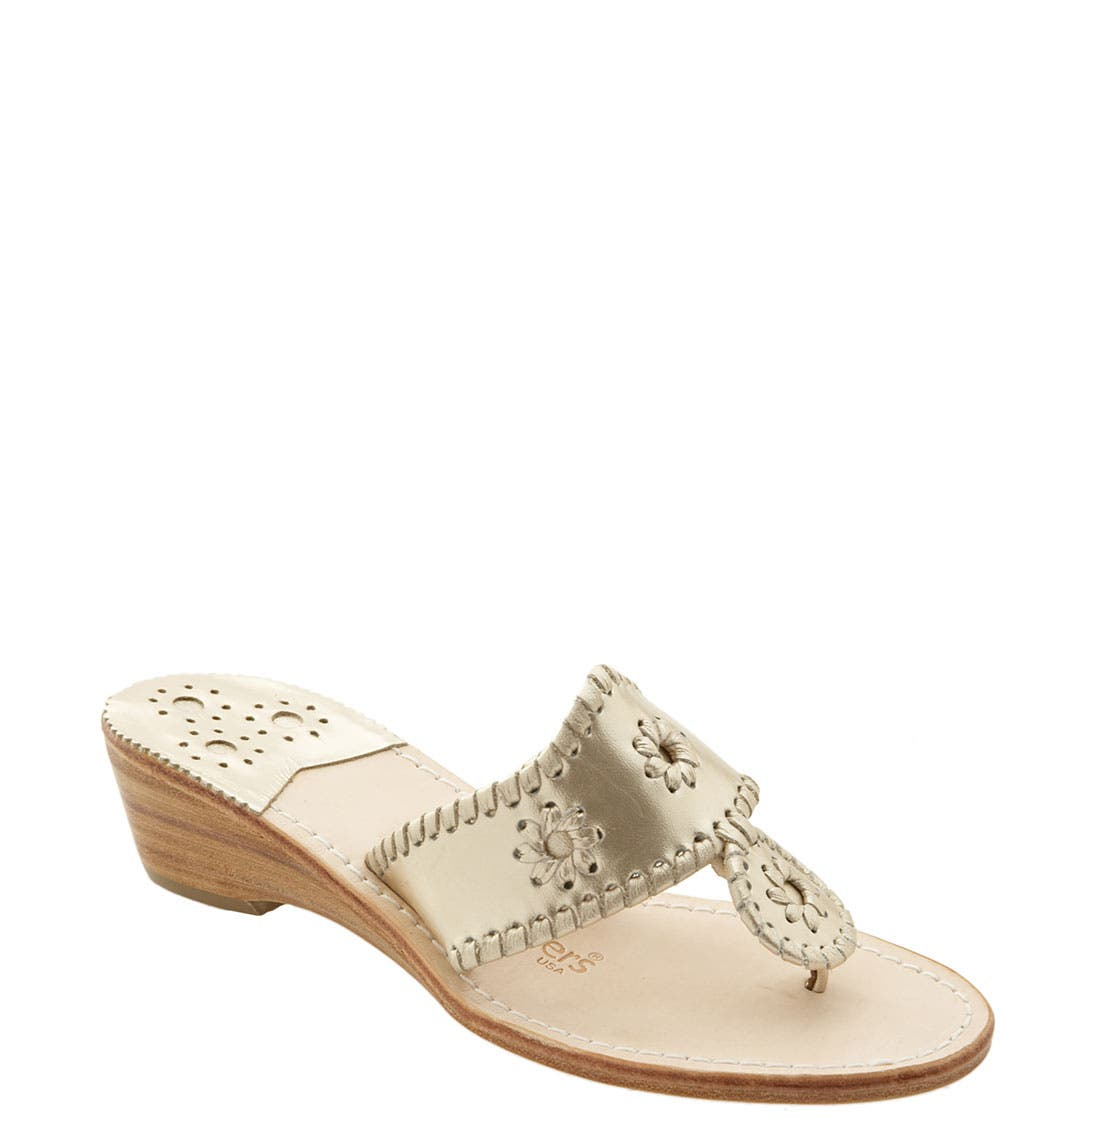 Alternate Image 1 Selected - Jack Rogers Wedge Sandal (Women)